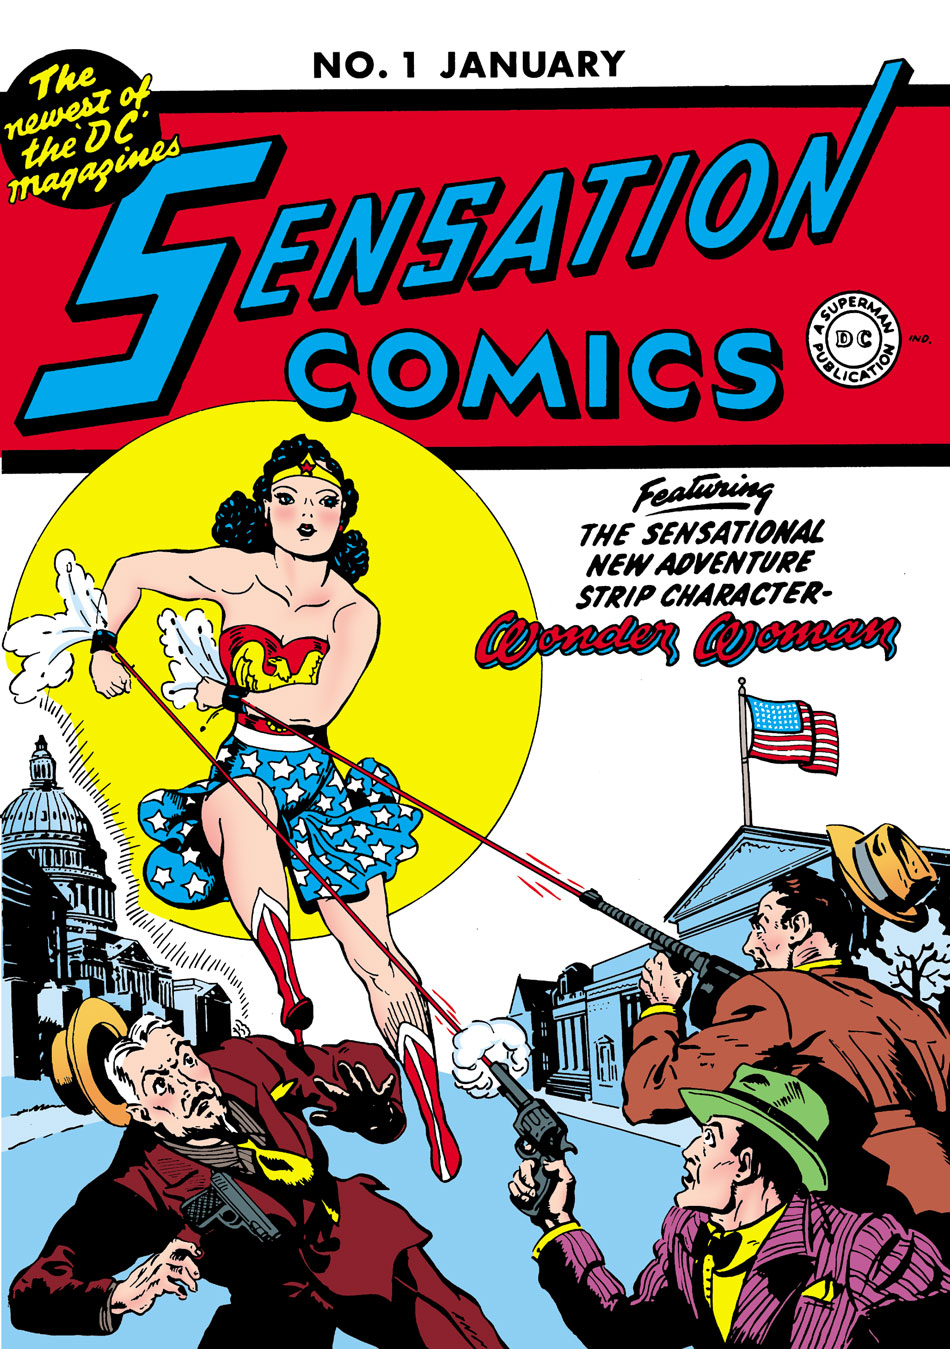 1941: William Moulton Marston invents Wonder Woman, an Amazonian superhero who fights for women's rights and democracy. Her look is inspired by both pinup girls and suffragists.